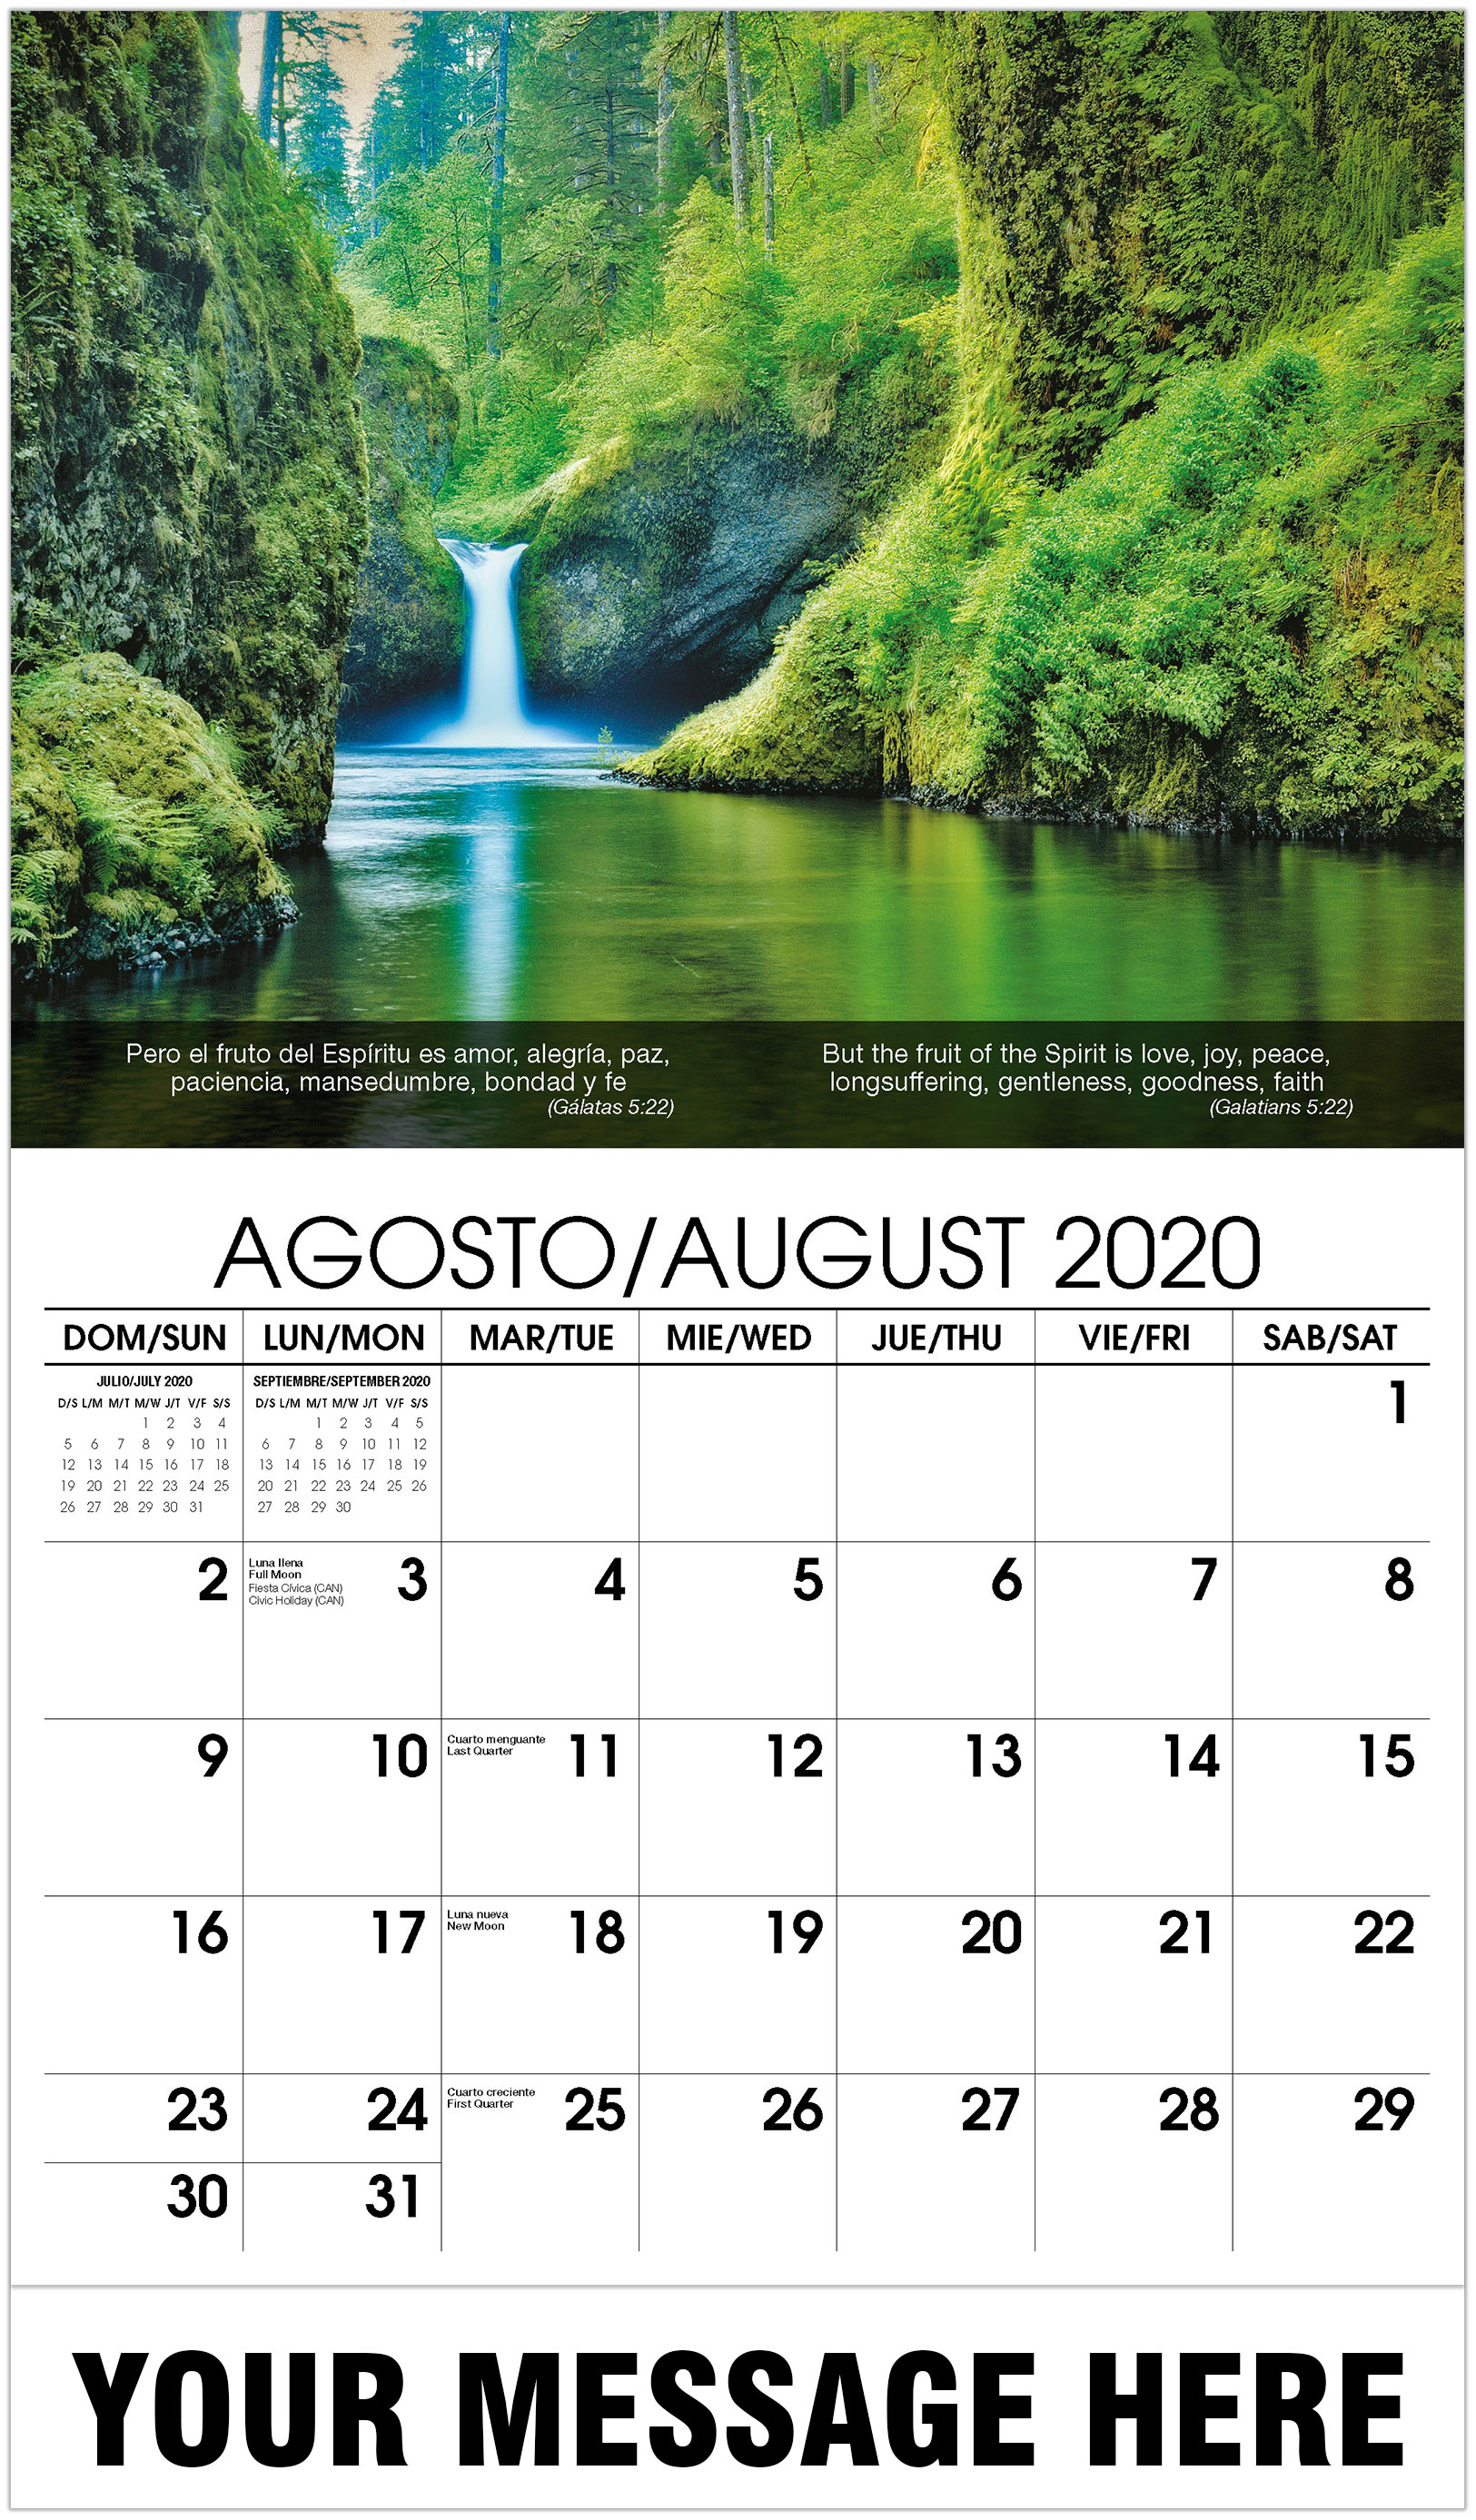 2020 Bilingual Business Advertising Calendar - Waterfall - August